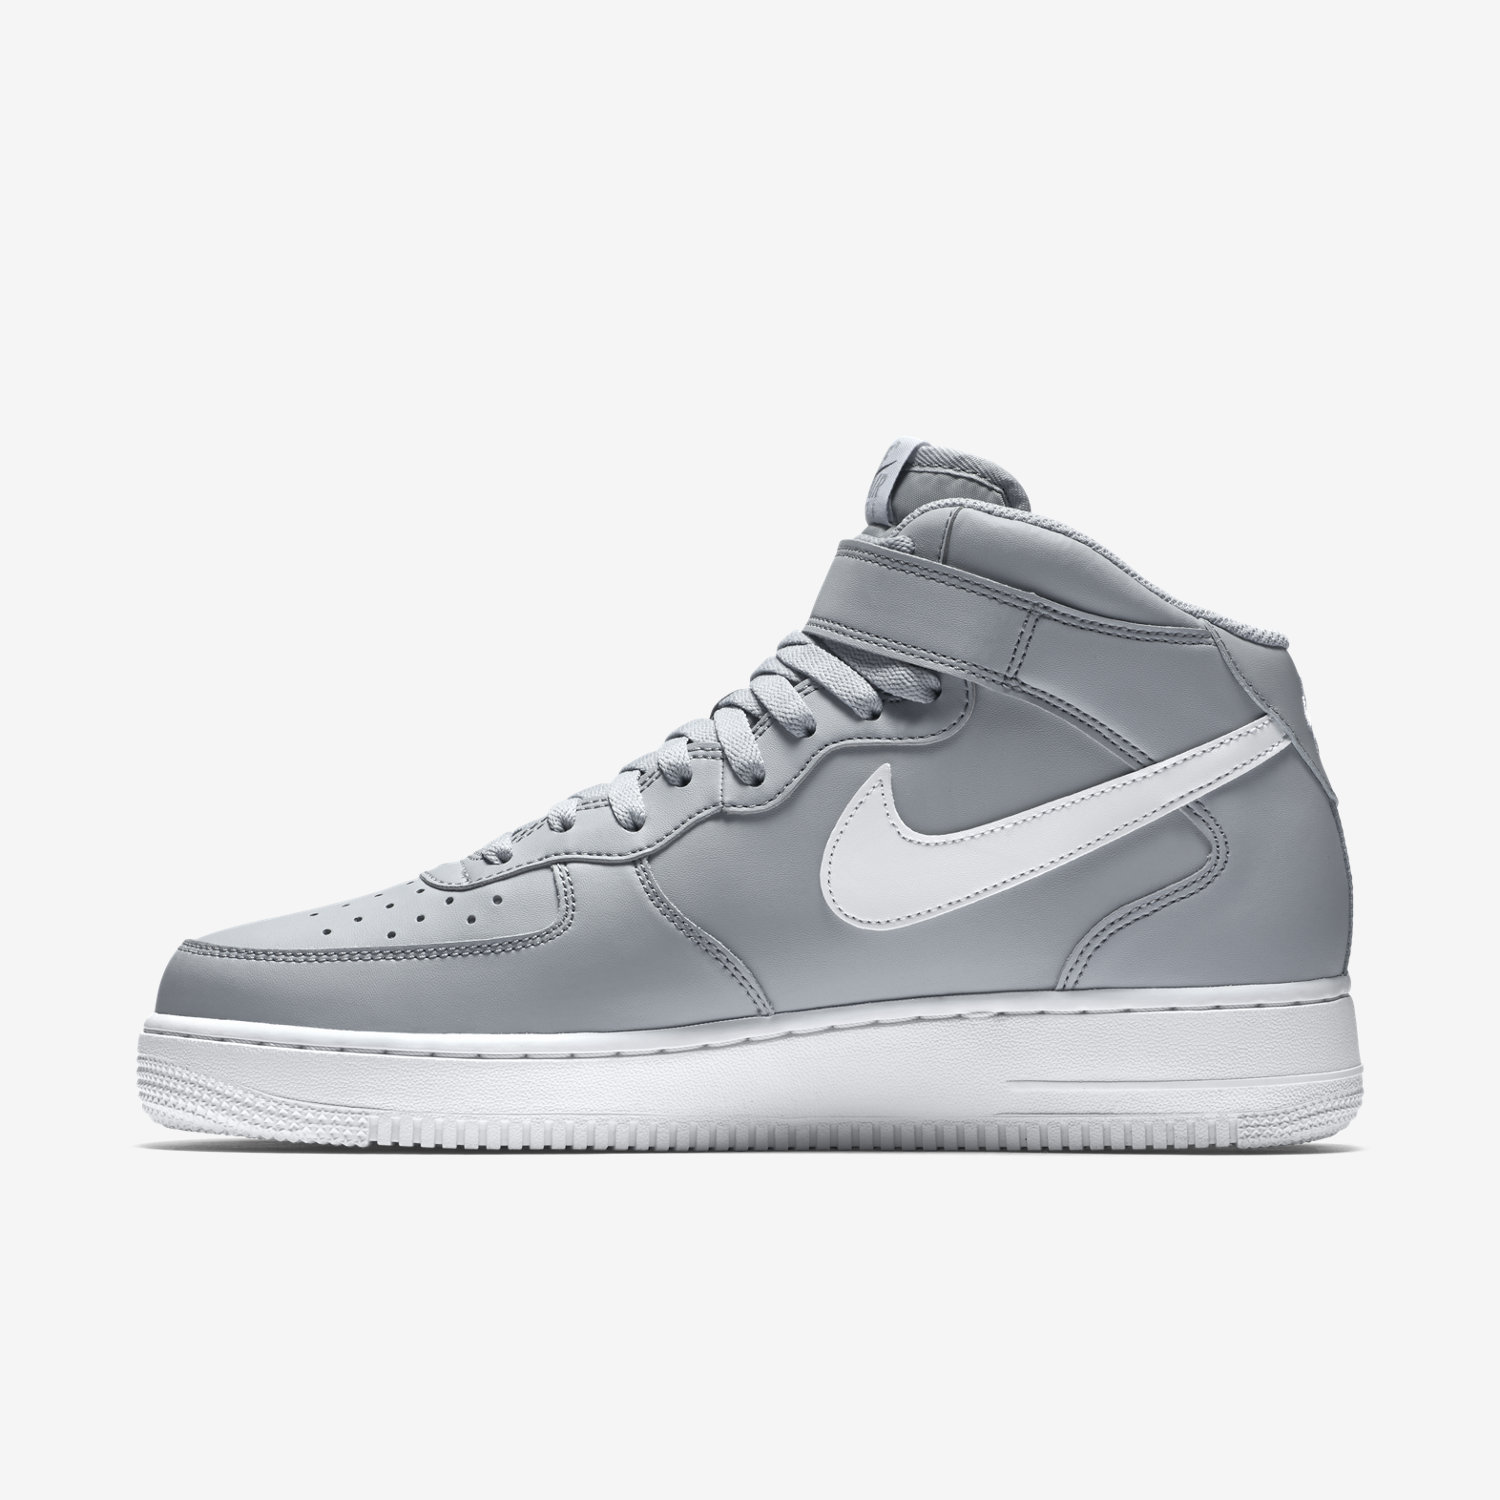 nike air force 1 mid 07 mens shoe nikecom air force 1 shoe